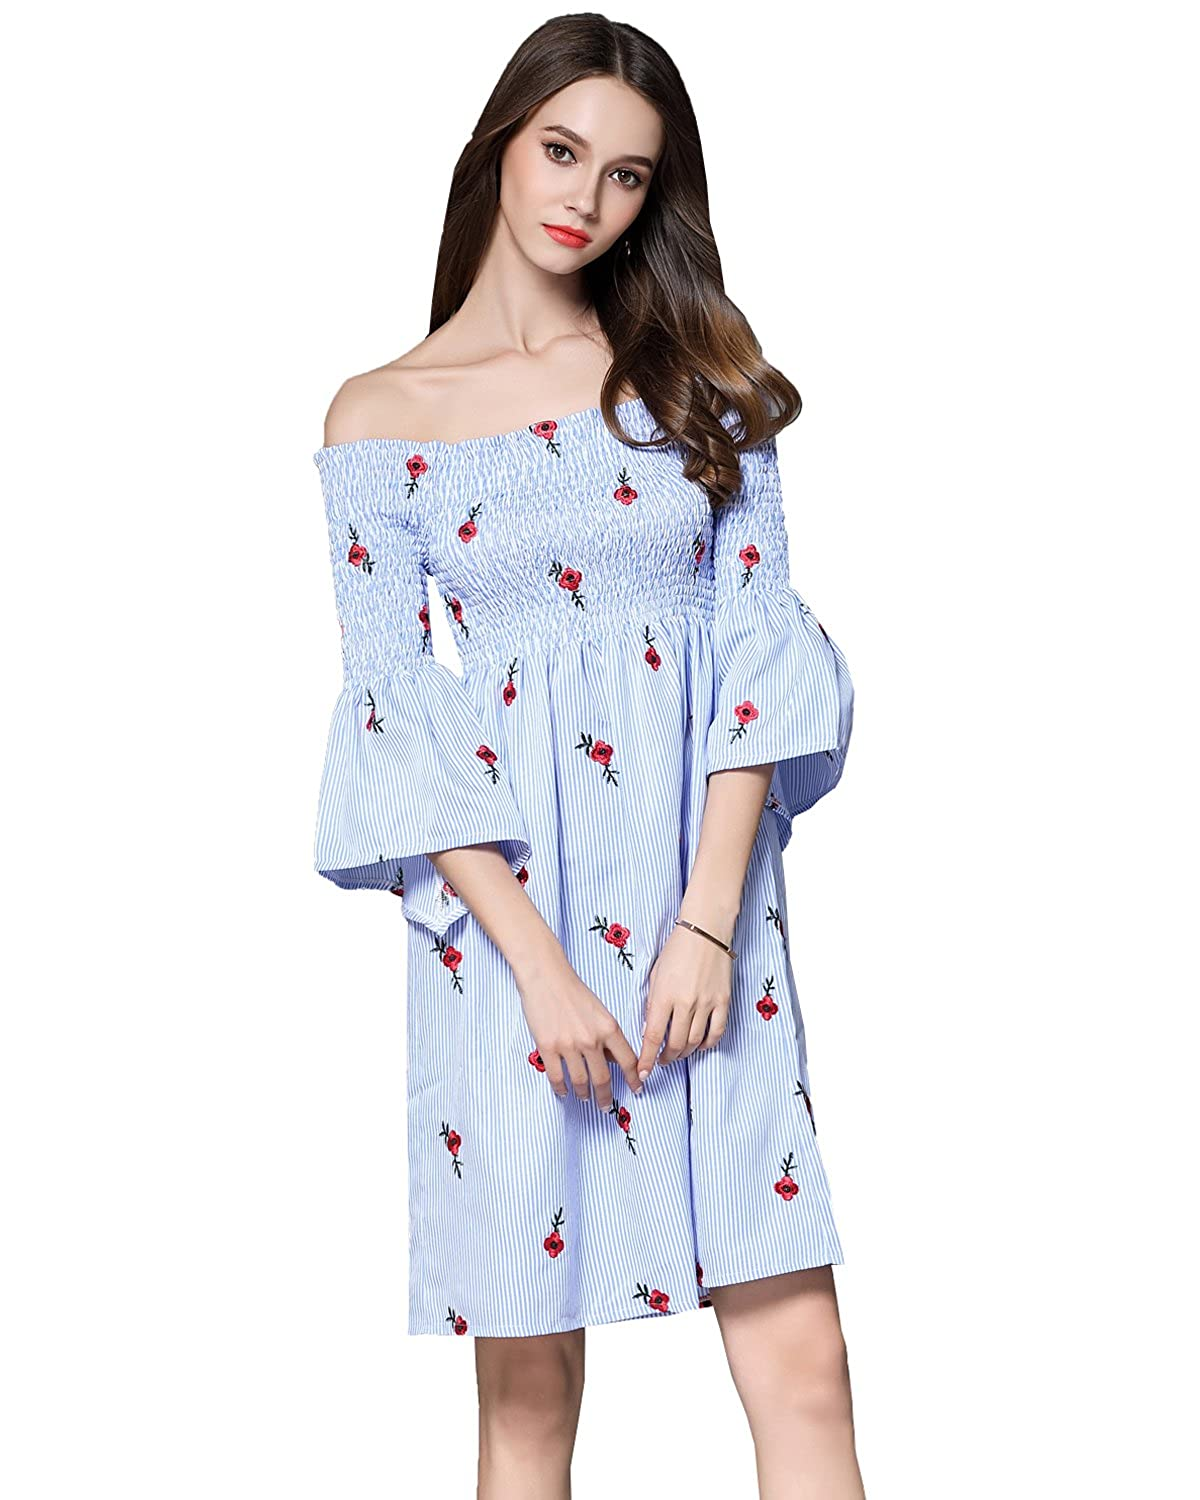 31eb6955151f Cute Dress Loose Fit Style. Suitable for Spring, Summer Autumn, Beach, Party,  Casual Daily Wear etc. Embroidery Short Mini Dress, Knee Length, ...